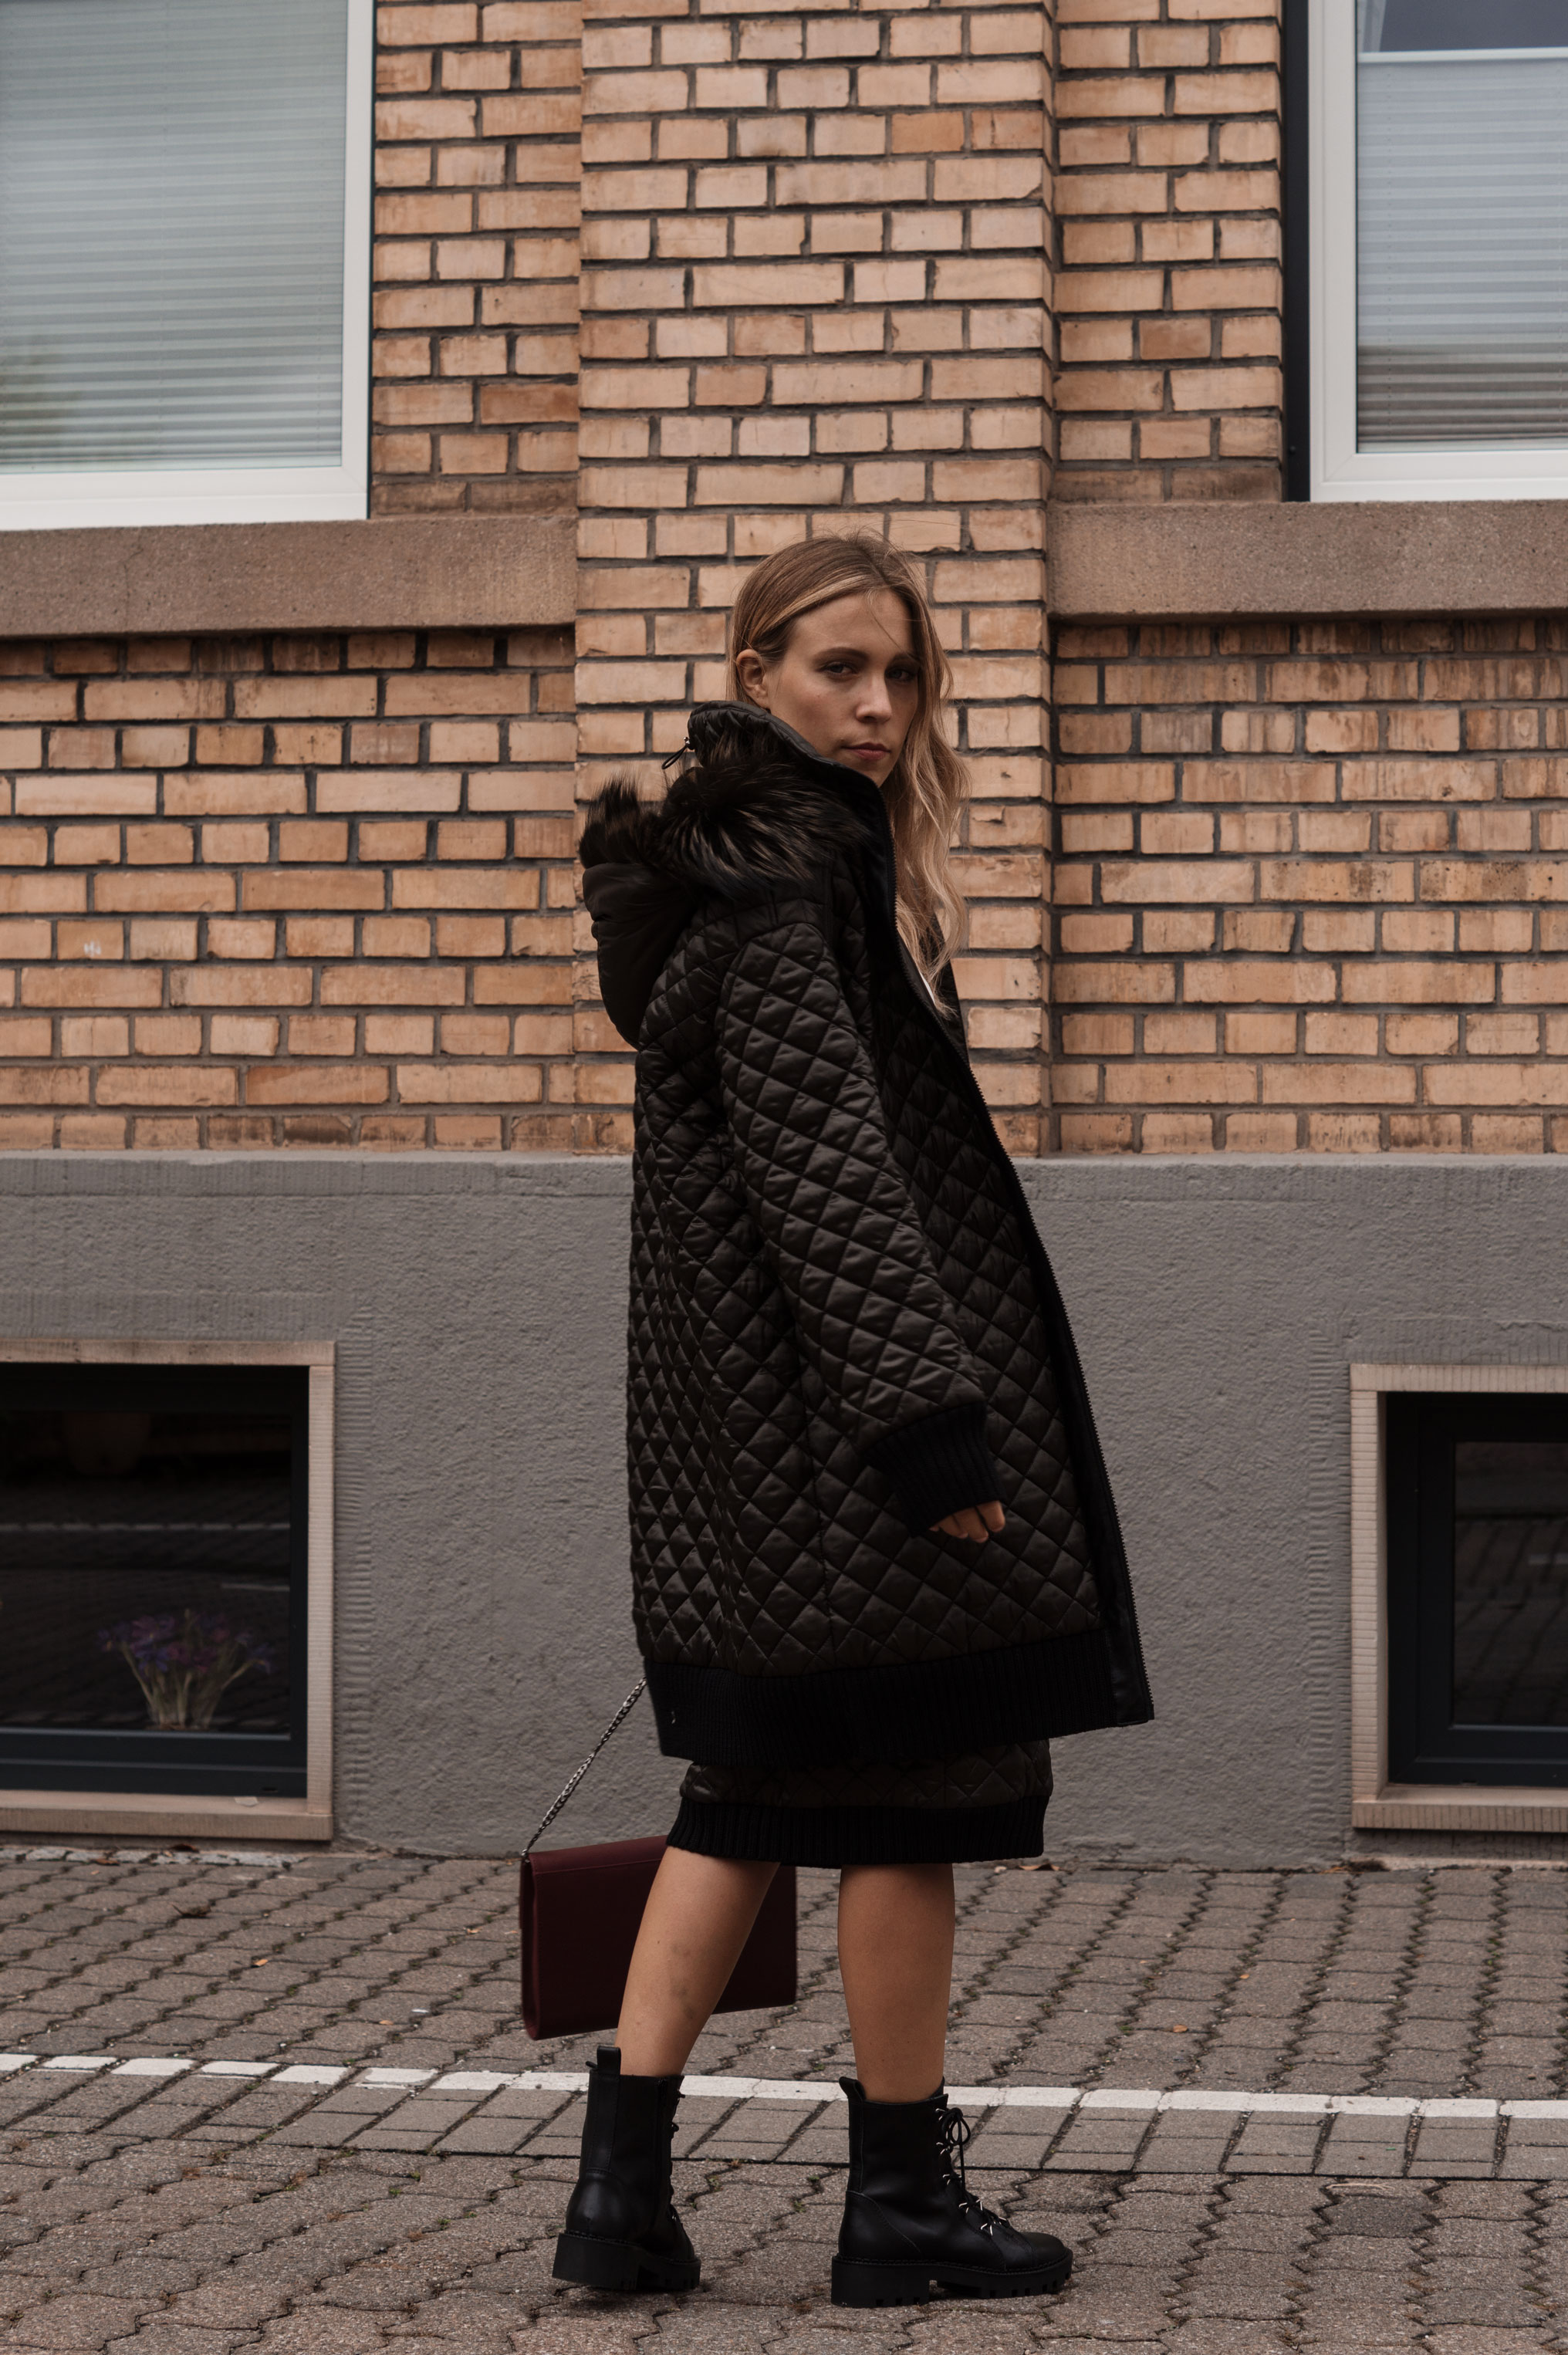 Coat Love Airfield Two Styles Coats Herbstjacke Fall Jacket Fall Outfit Herbstlook Sariety Fashionblogger Modeblog Heidelberg Boots Winter_3